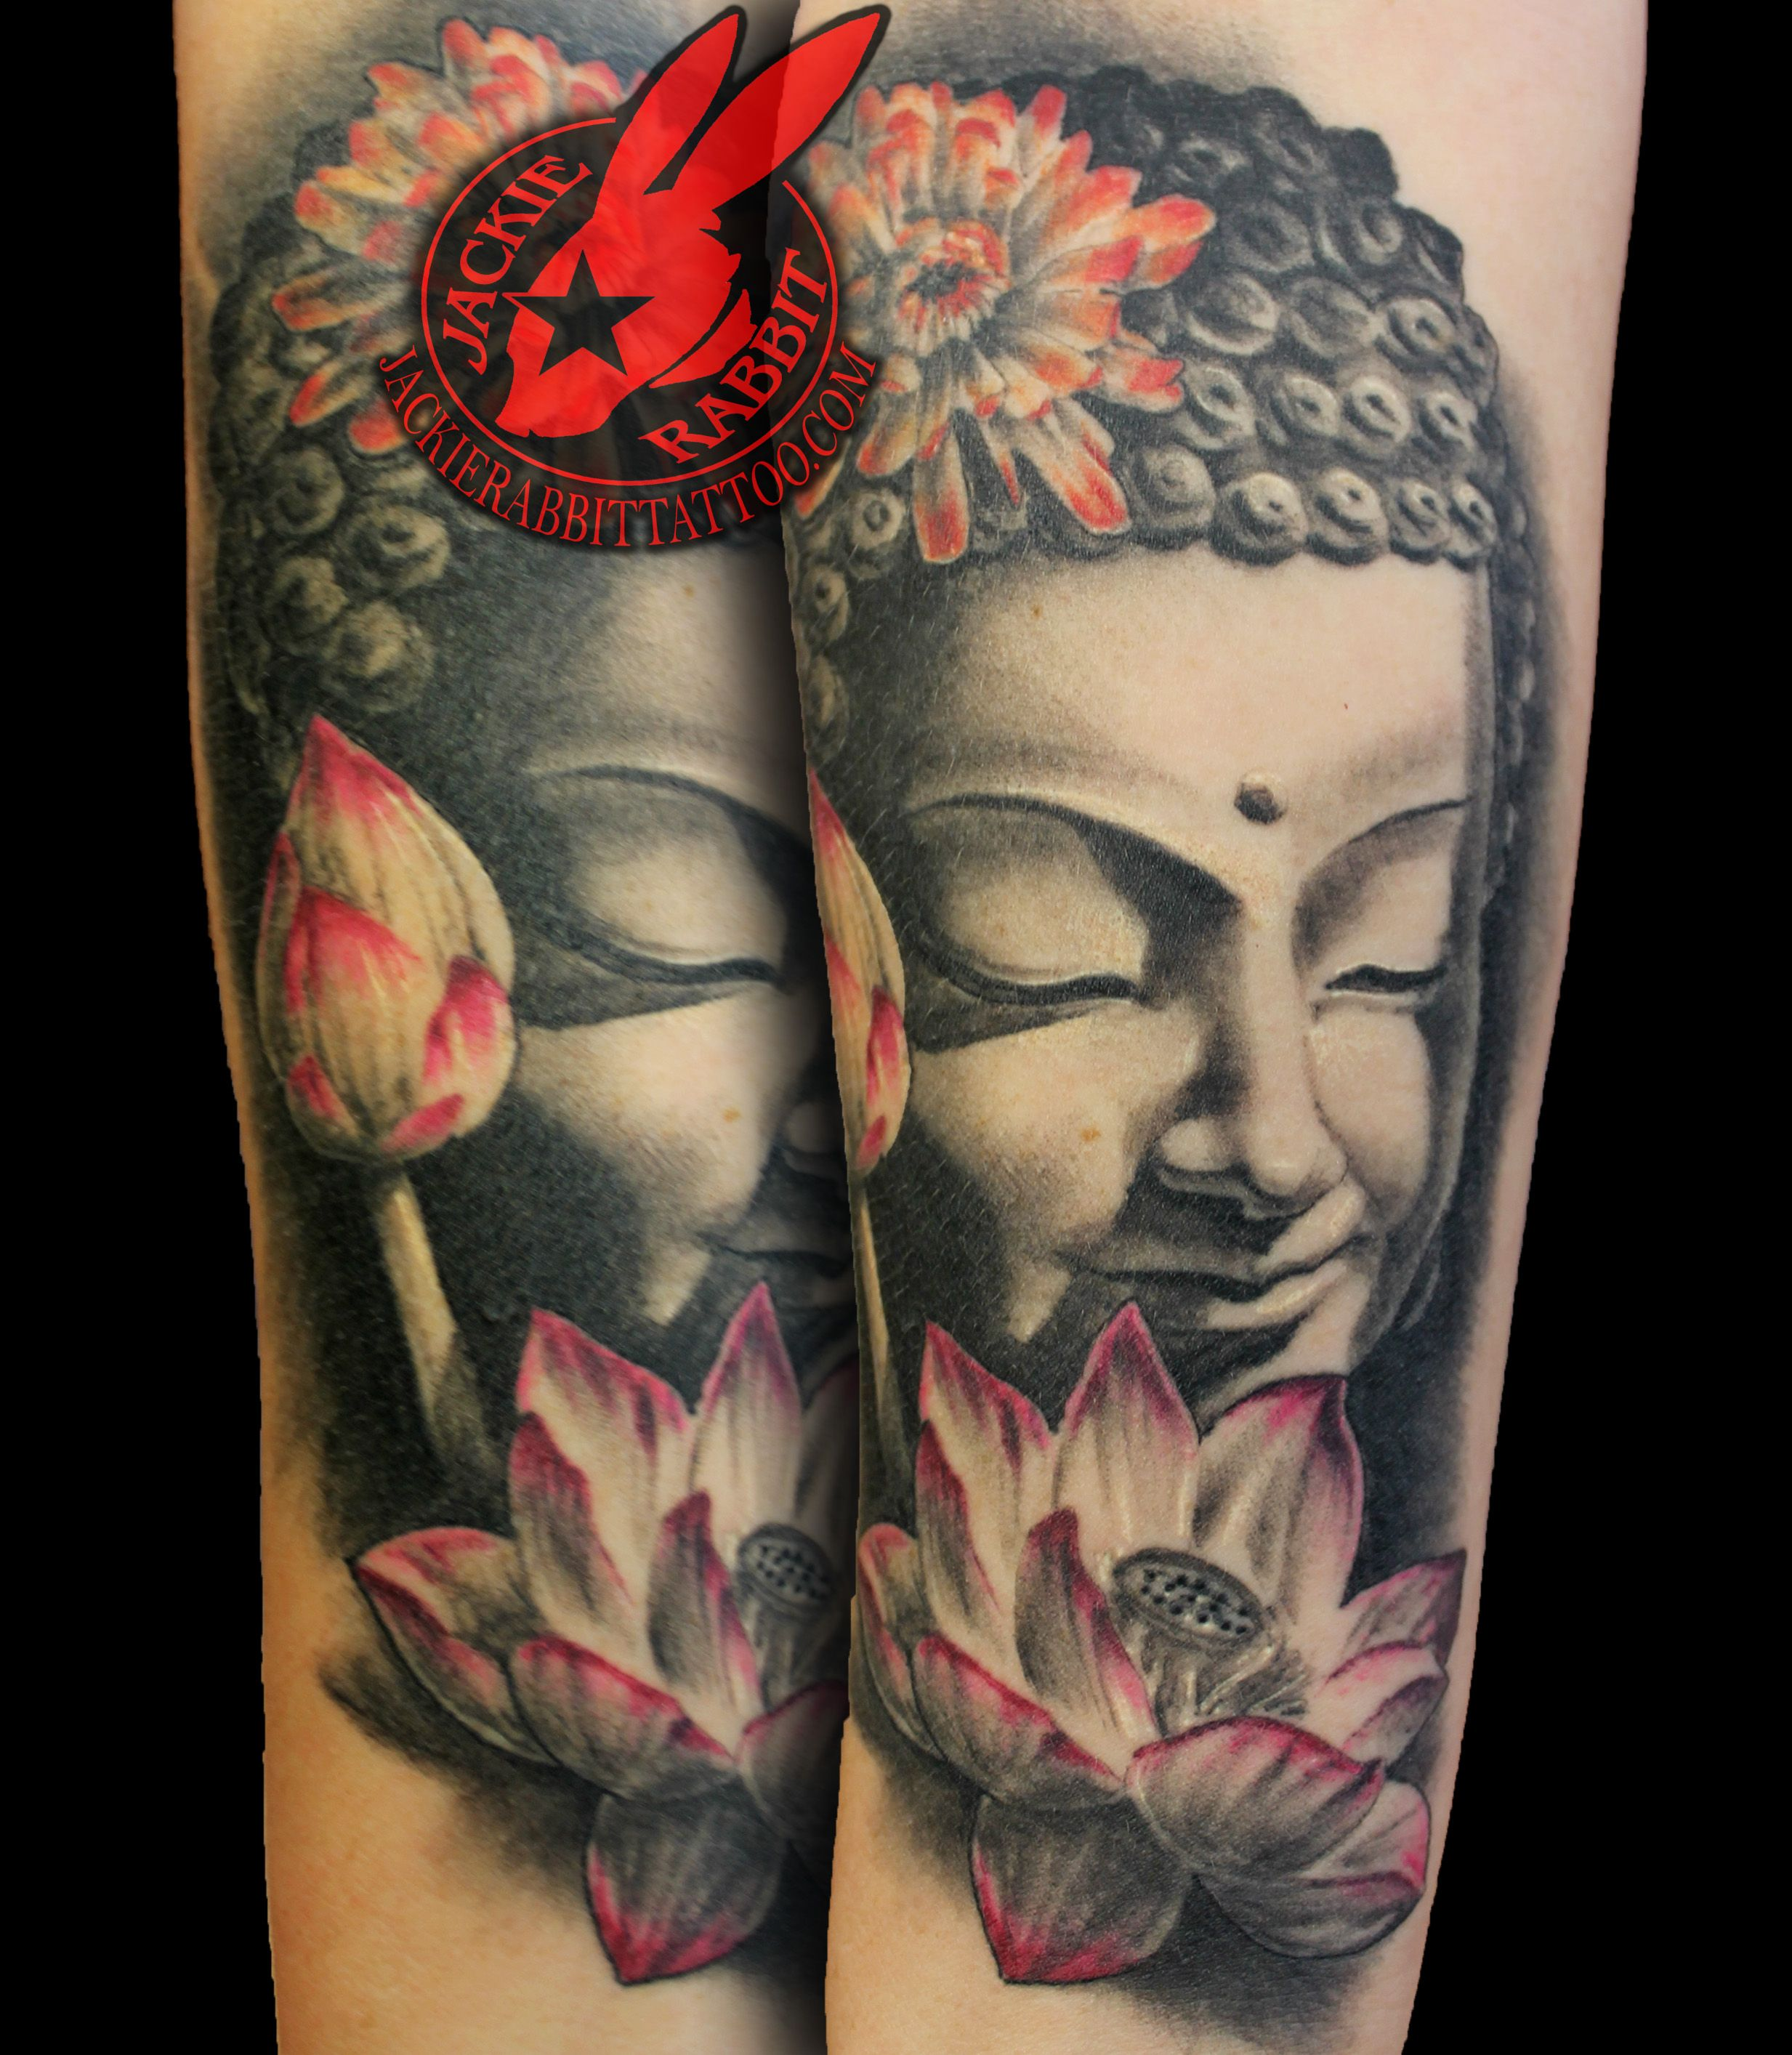 Healed Buddha Statue Lotus Flower Realistic 3d Tattoo By Jackie Rabbit Buddha Tattoos Realistic Lotus Tattoo Buddhist Tattoo